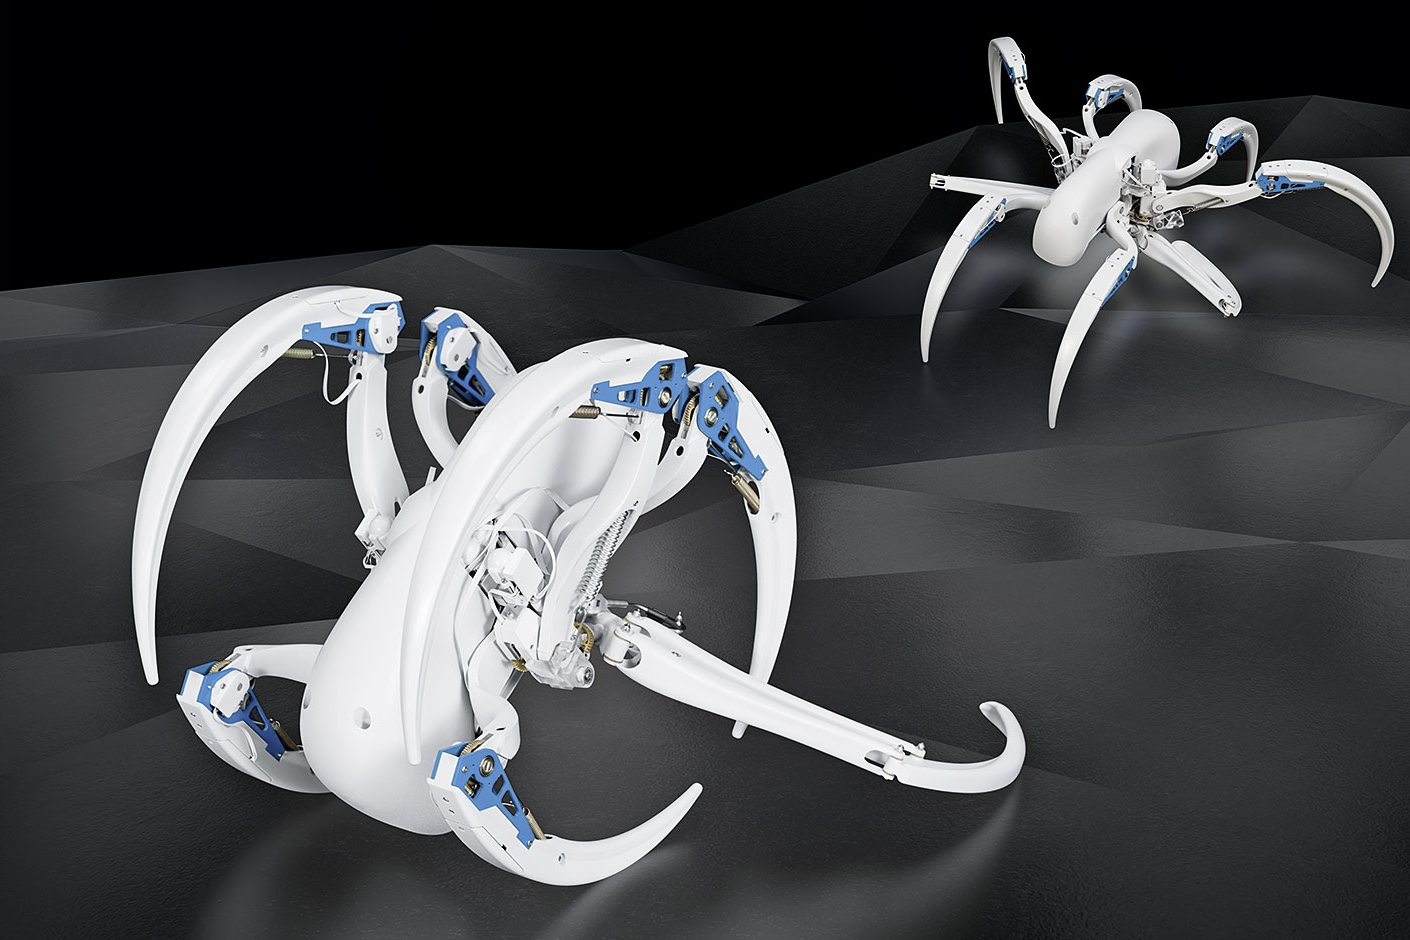 This Spider-inspired Robot Can Roll Like A Tyre 1